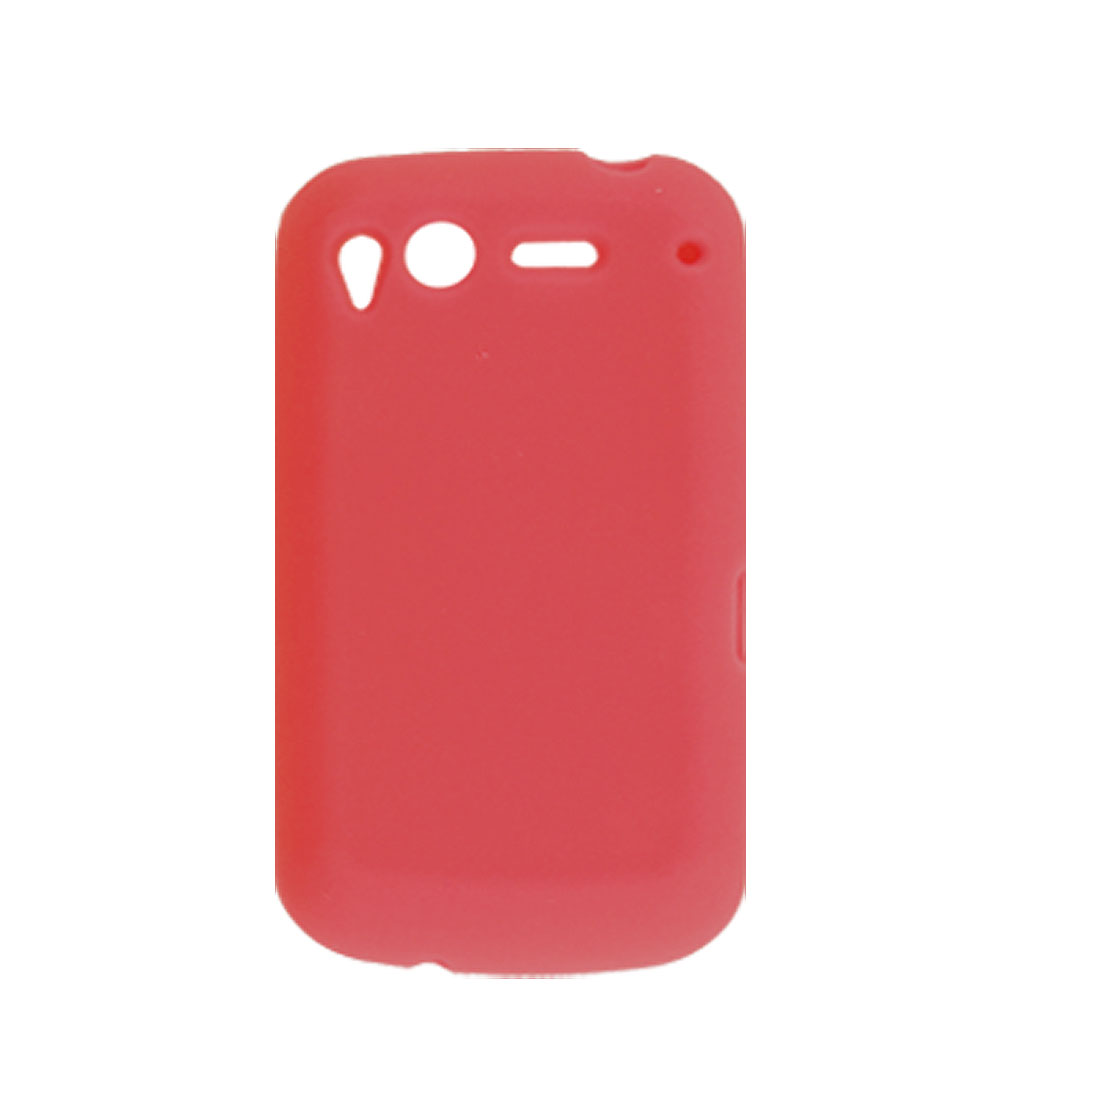 Soft Silicone Red Cover Protector for HTC Desire S